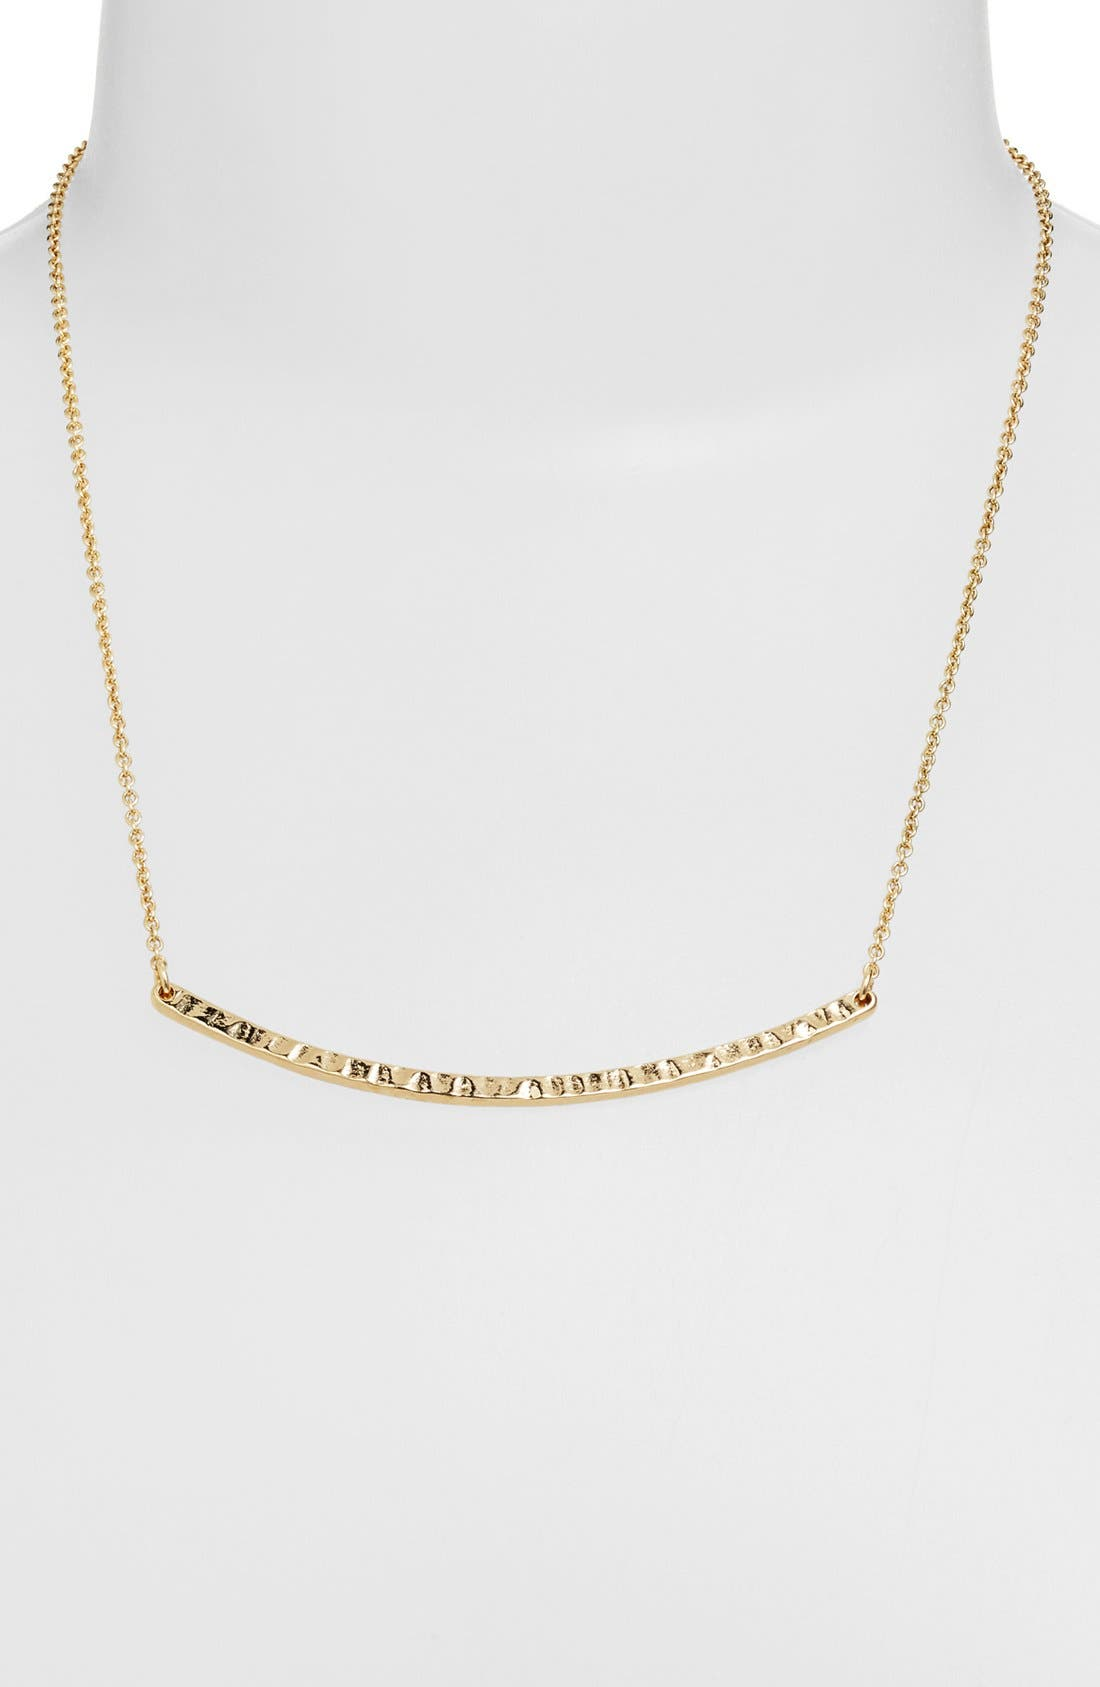 Main Image - Stephan & Co. Curved Bar Necklace